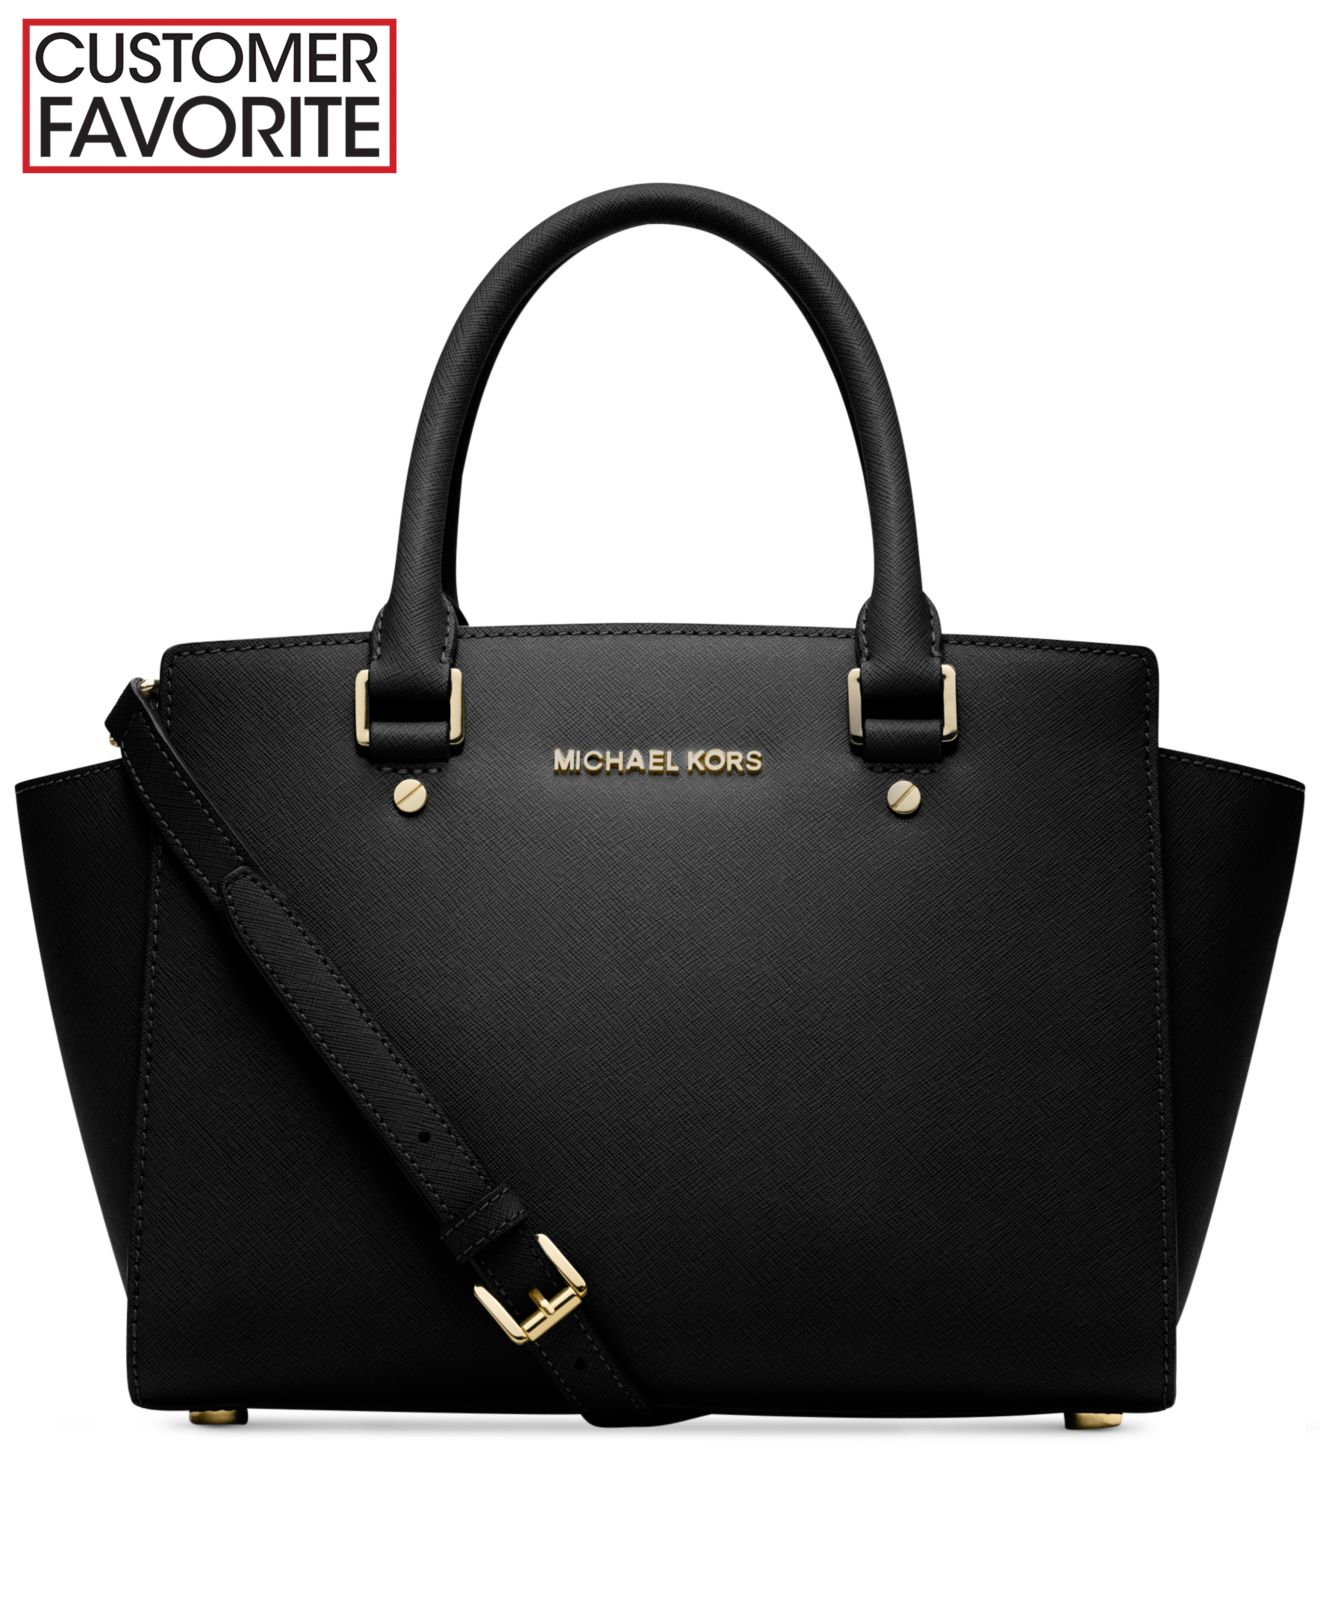 black and gray michael kors bag f759  MICHAEL Michael Kors Selma Collection